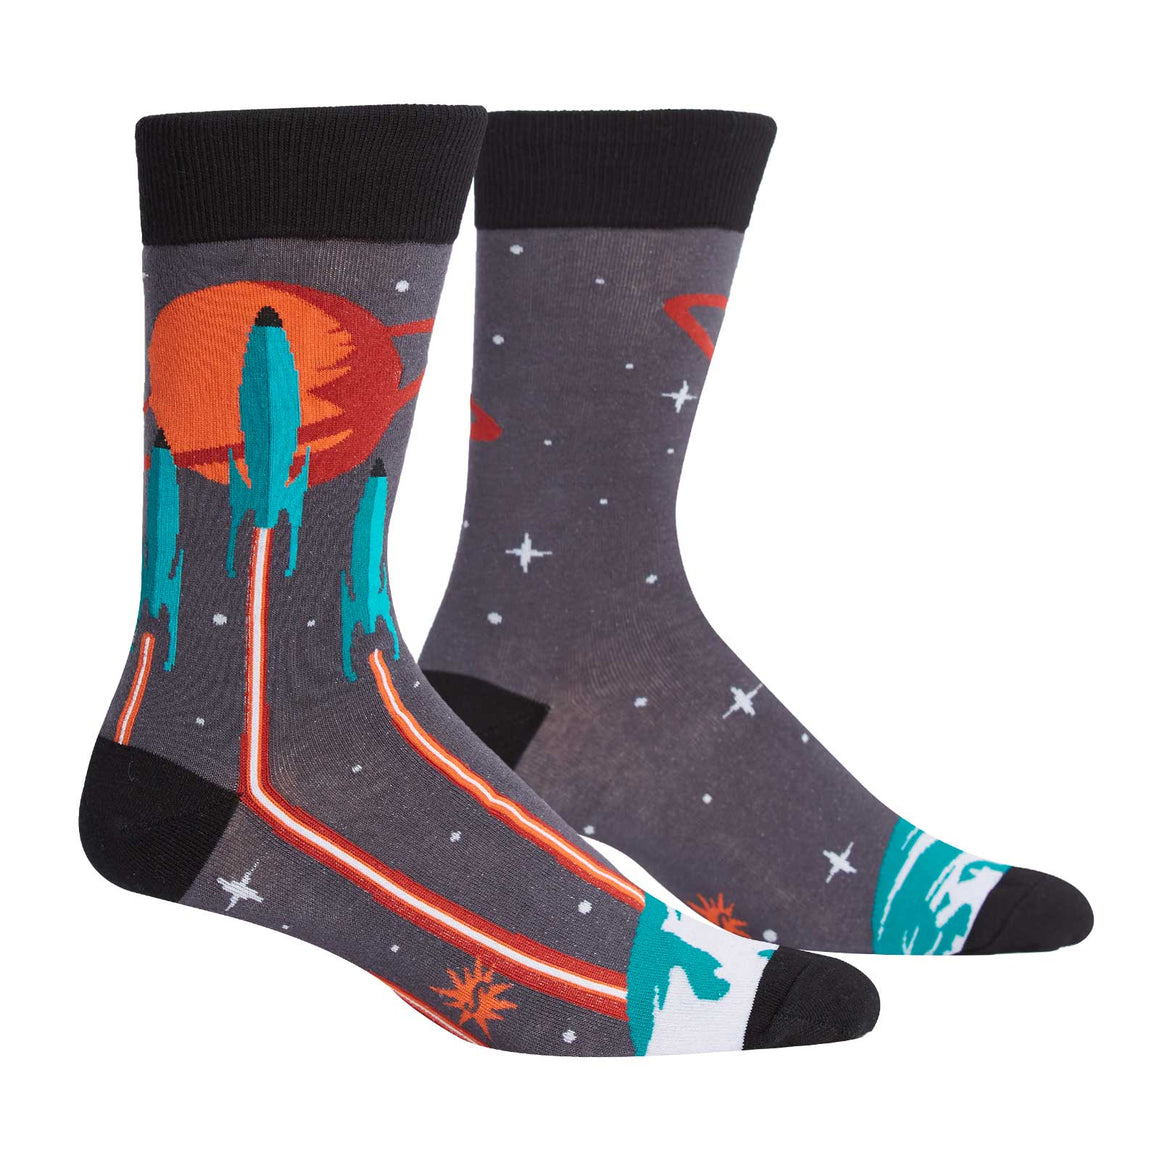 These space socks for men show a rocket launch from Earth headed toward distant planets.